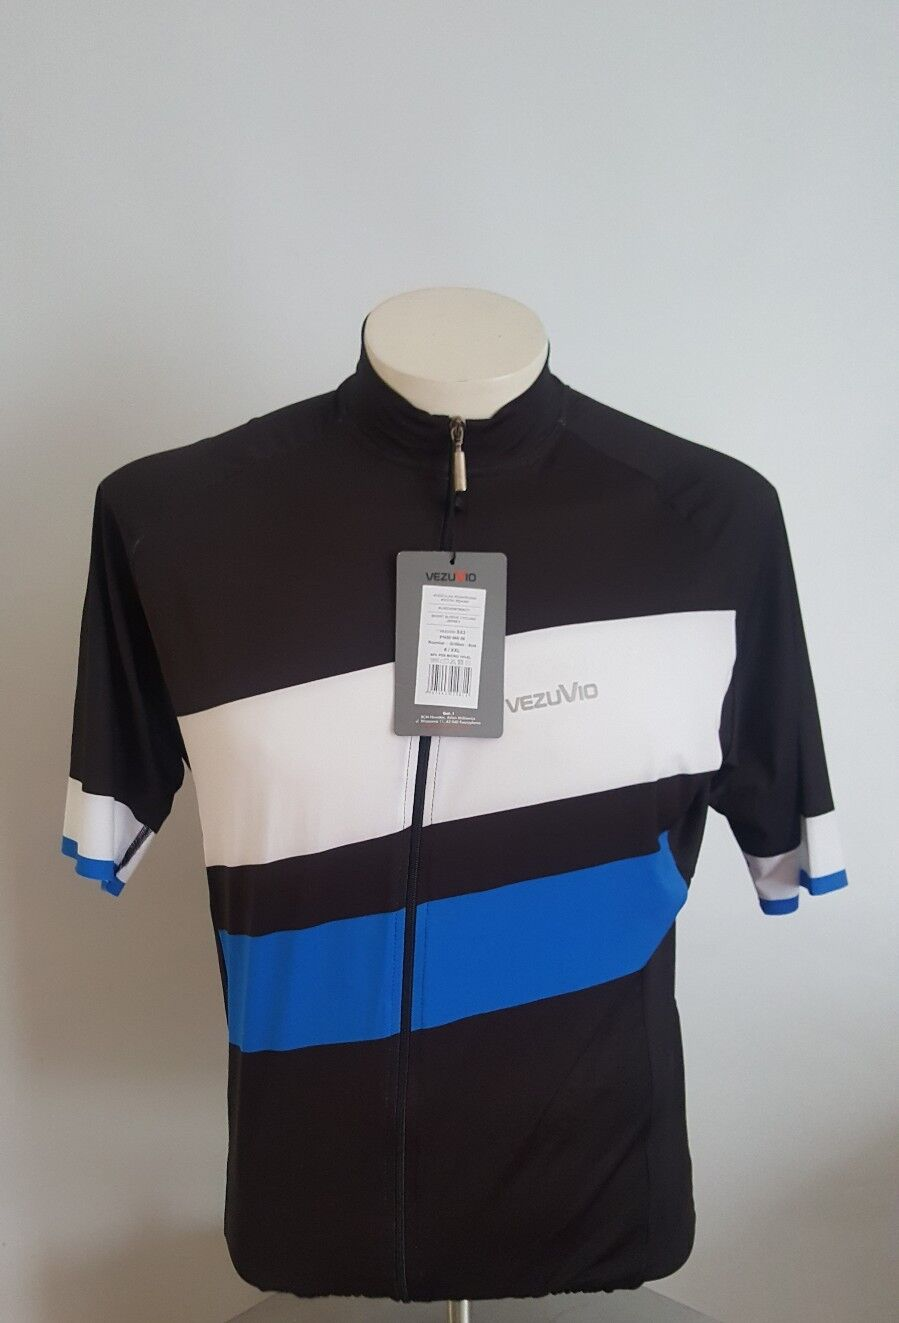 VezuVio Short  Sleeve Cycling Jersey Top Size L XL  factory direct sales